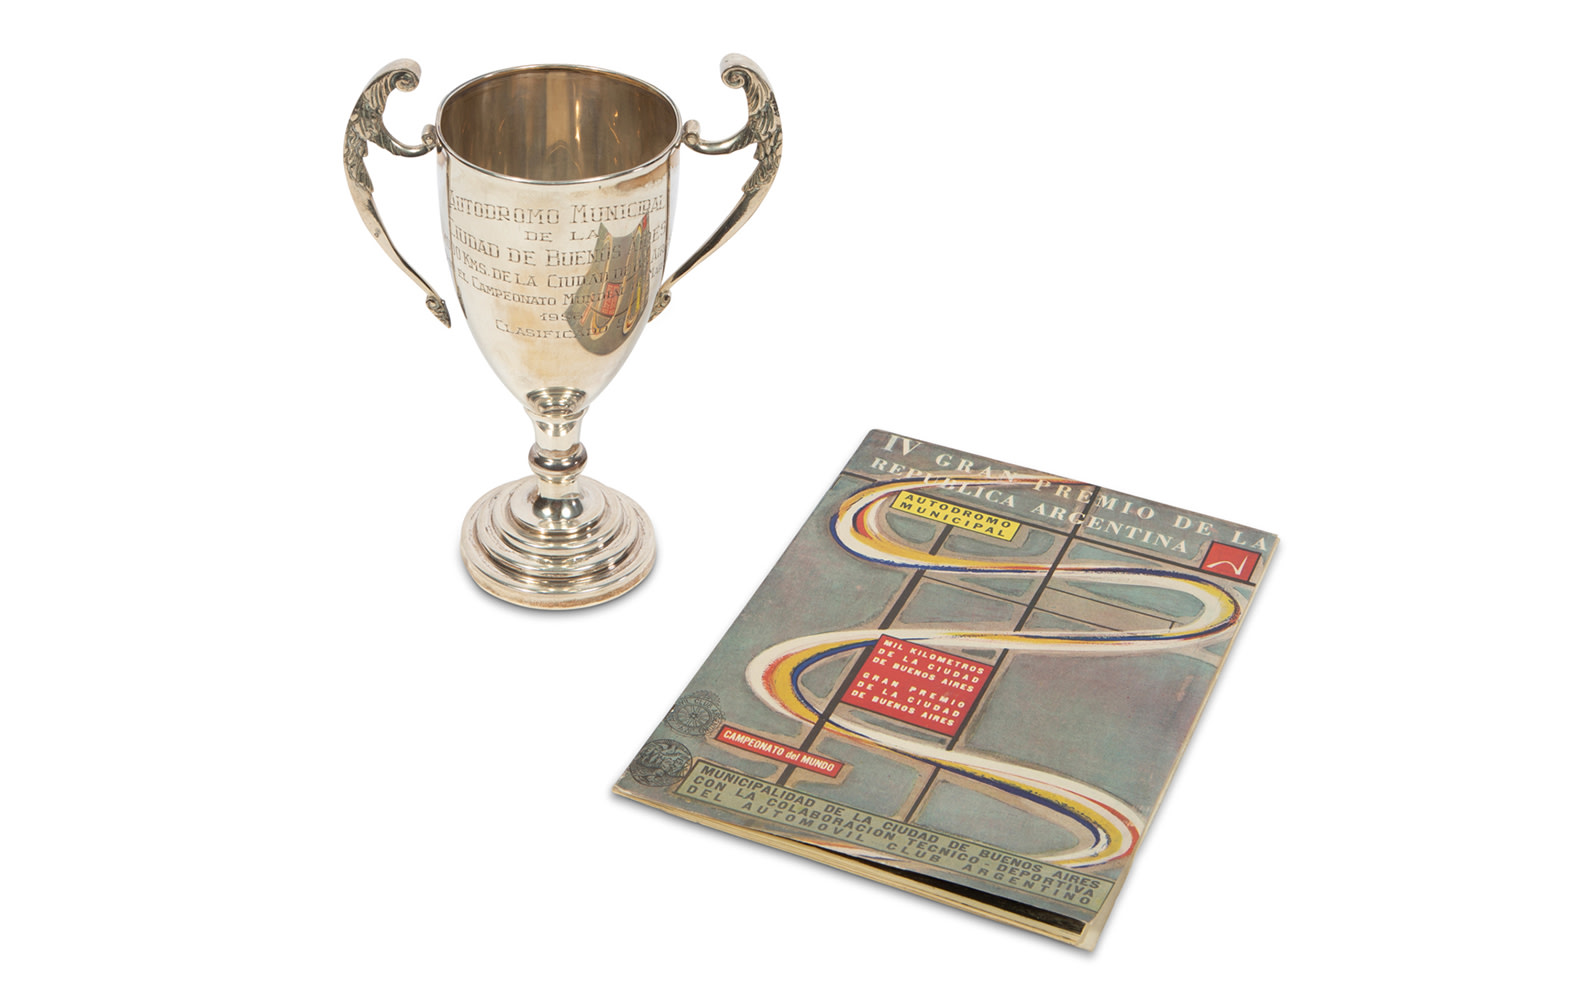 1956 Grand Prix of Argentina Trophy and Official Race Program